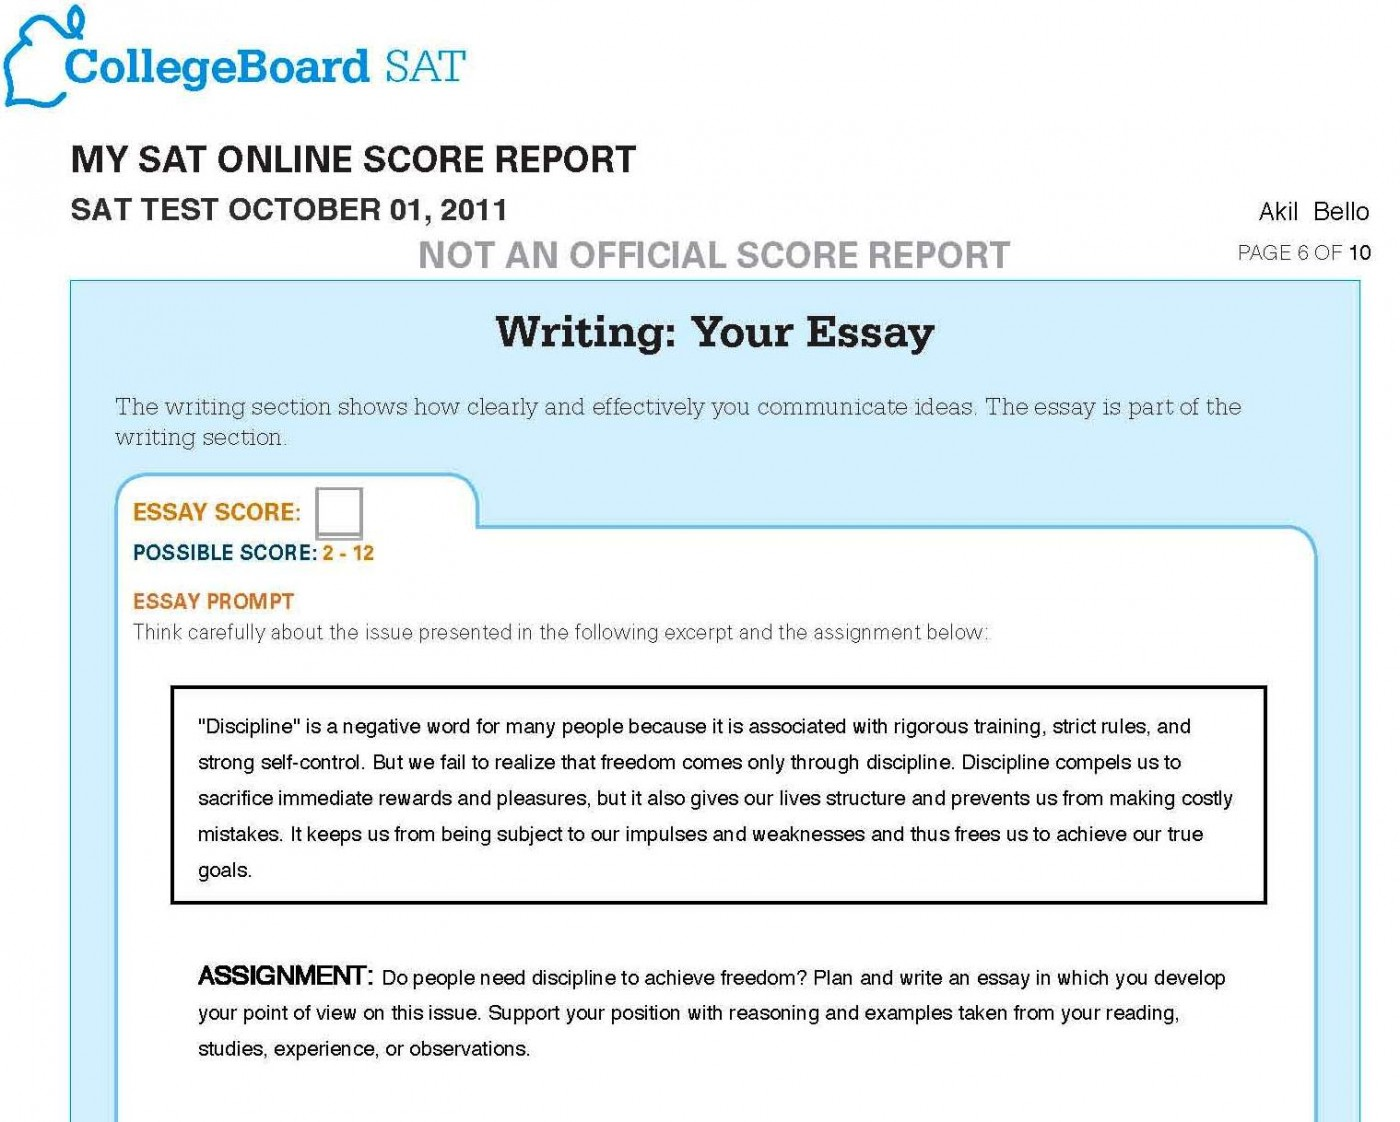 023 Sat Essay Score Test How To Write Step By Pdf Faster Formula Prepscholars Stirring Release For Harvard 1400